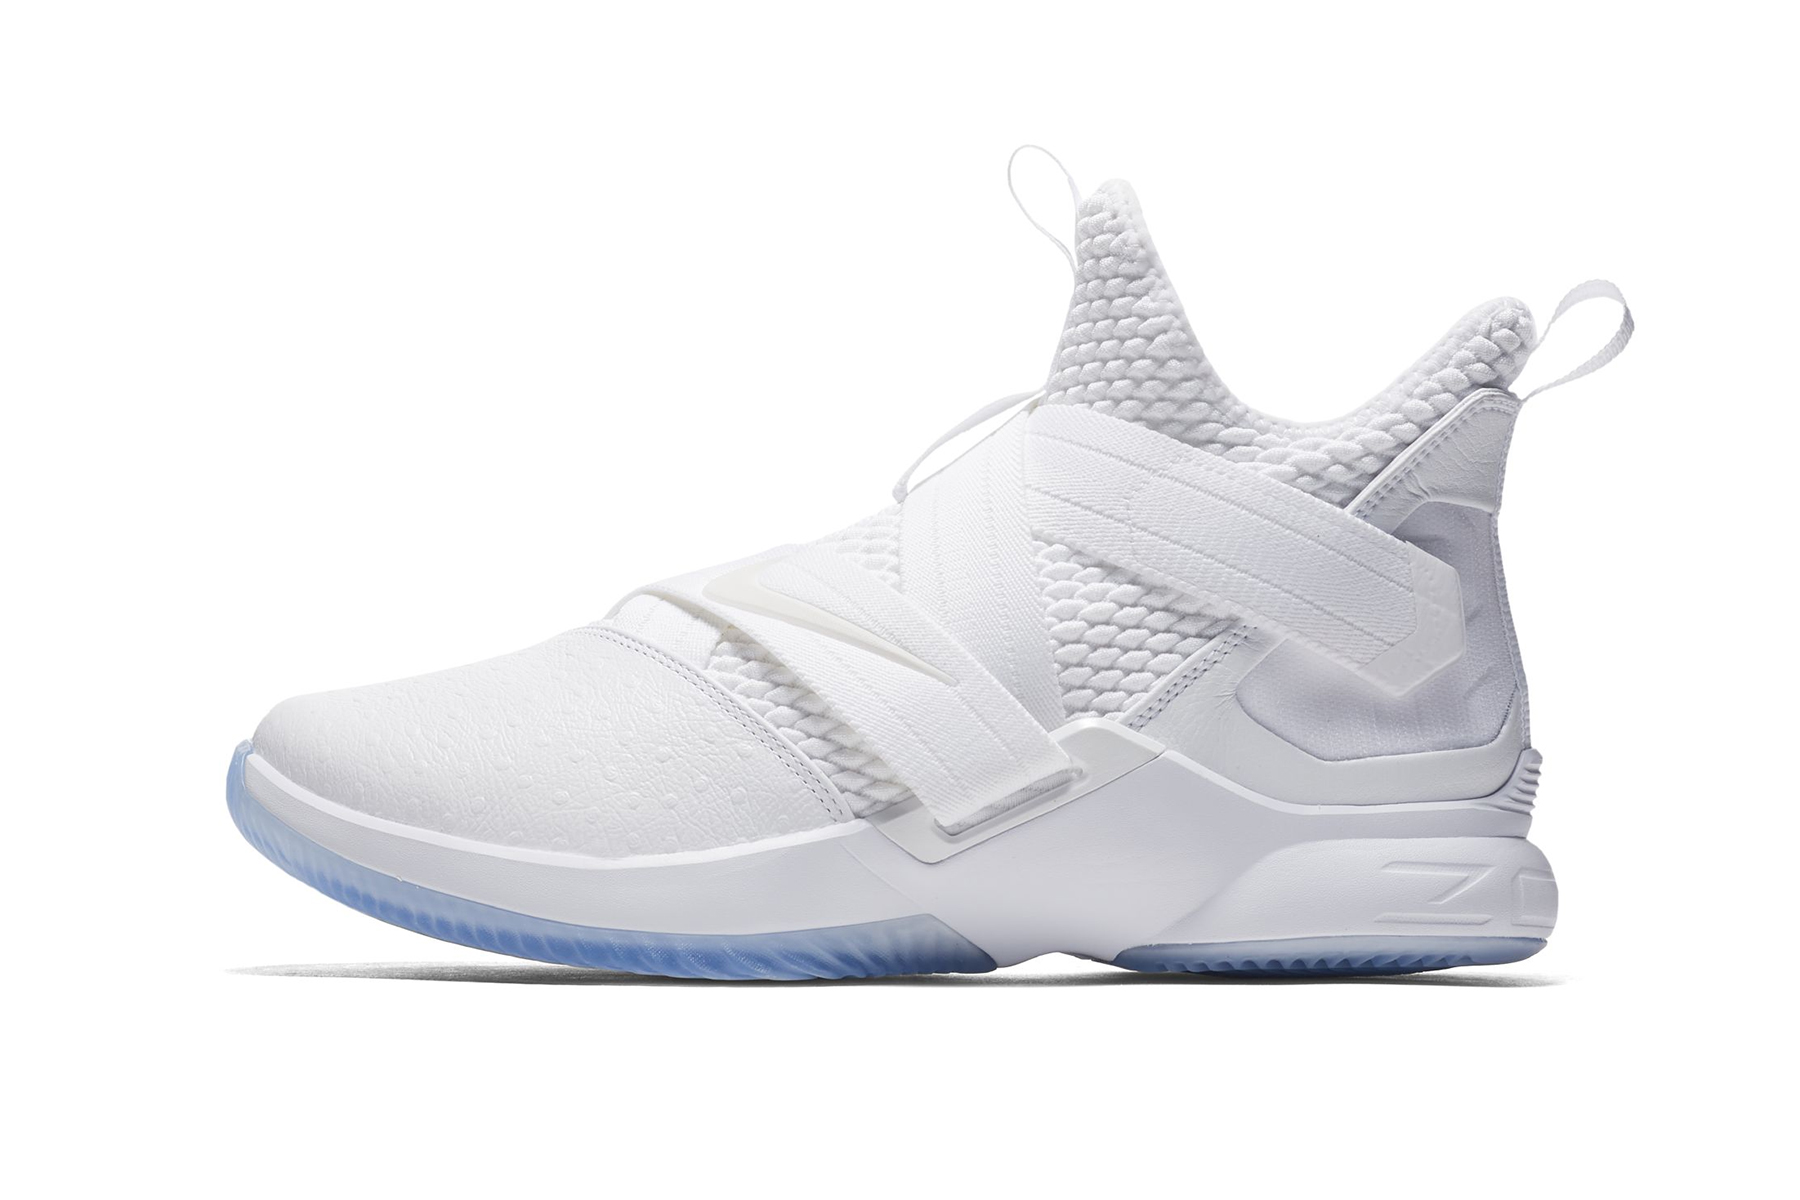 competitive price 1c566 adf38 Nike LeBron Soldier 12